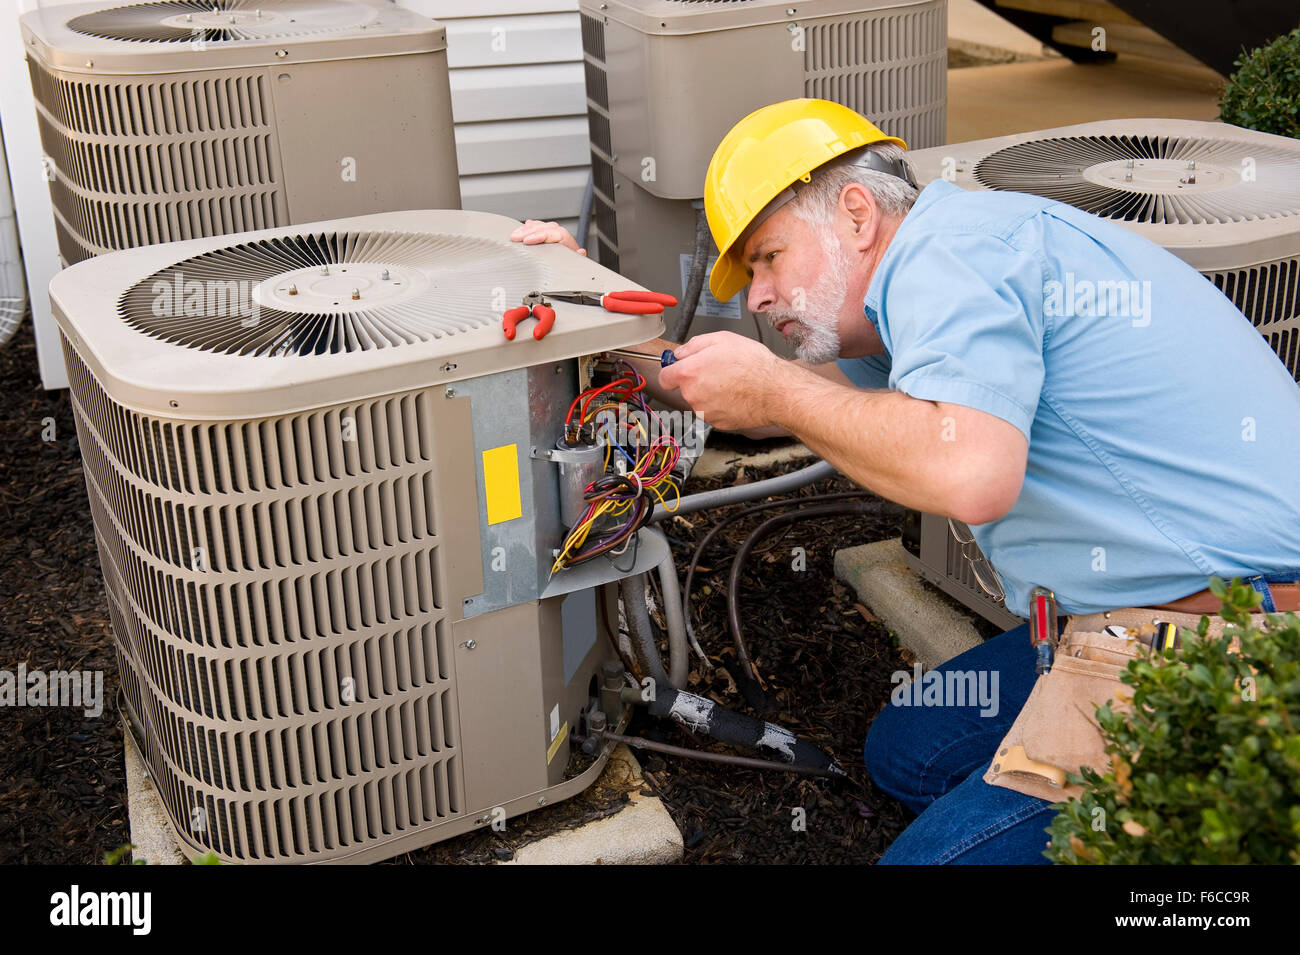 How air conditioning works in an apartment, car or mobile 62